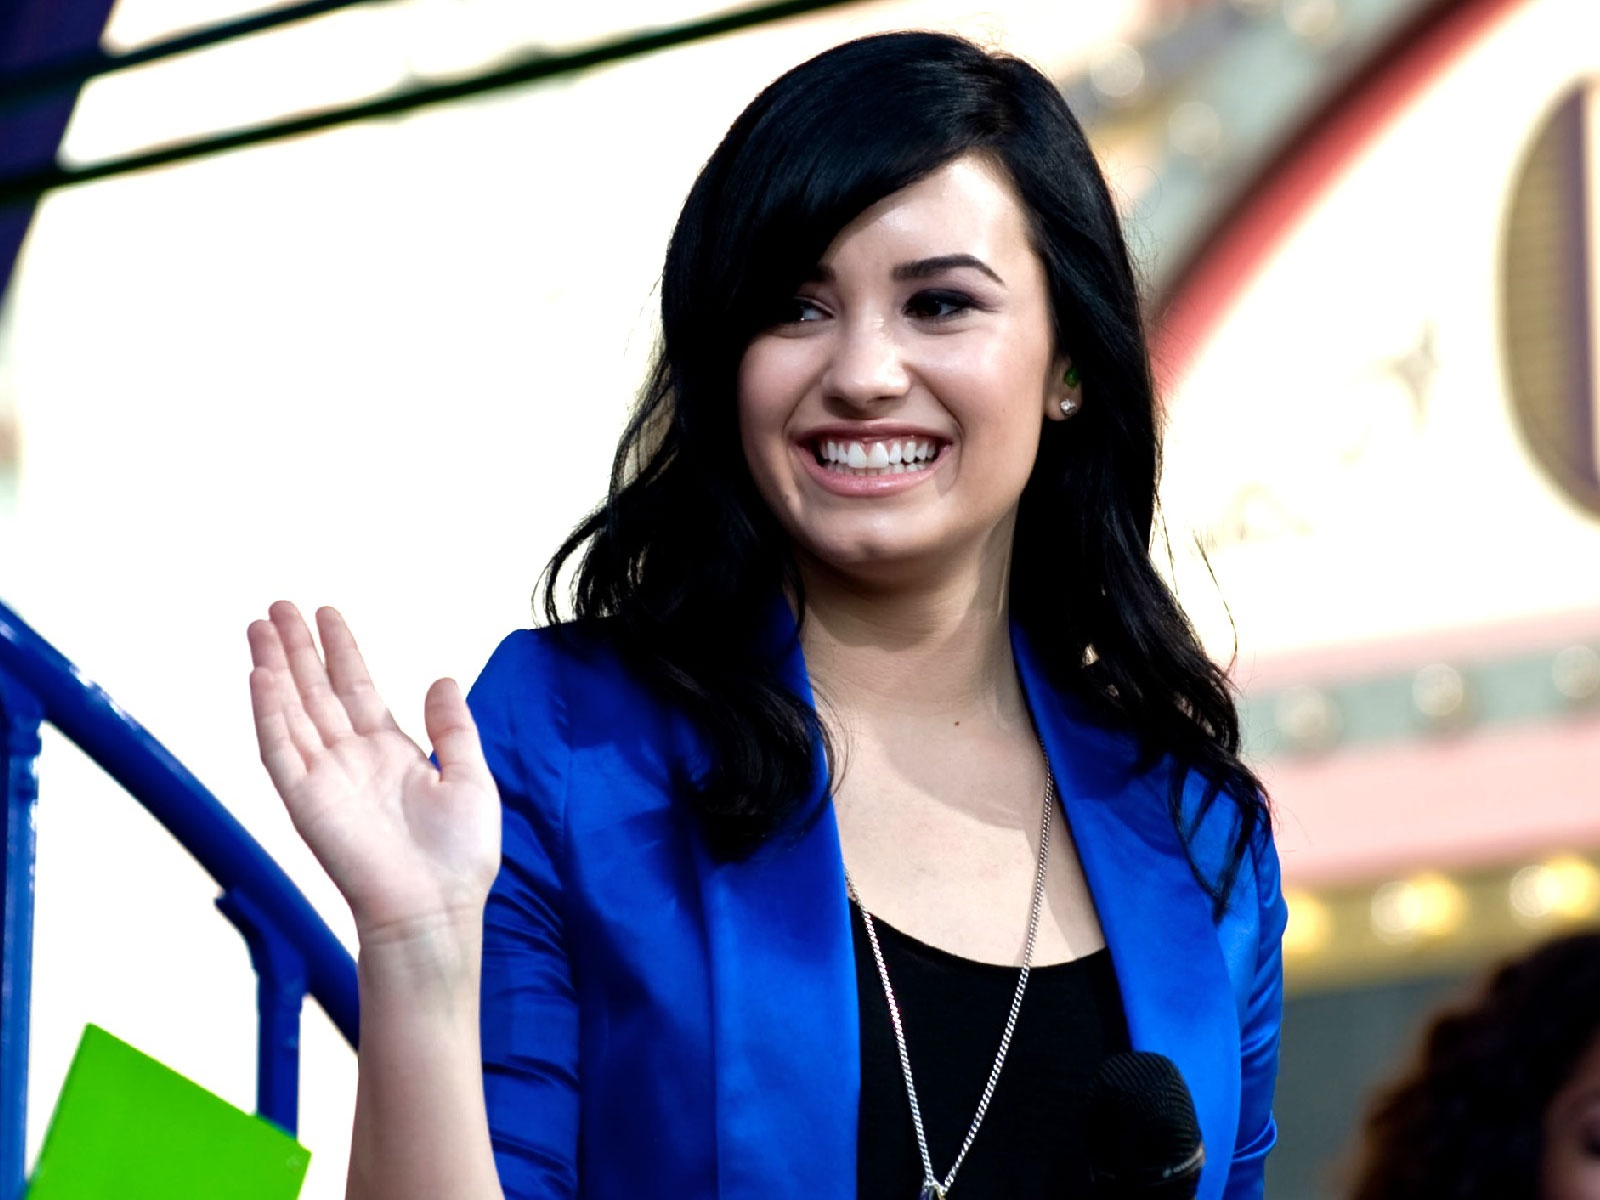 demi lovato images hd a20